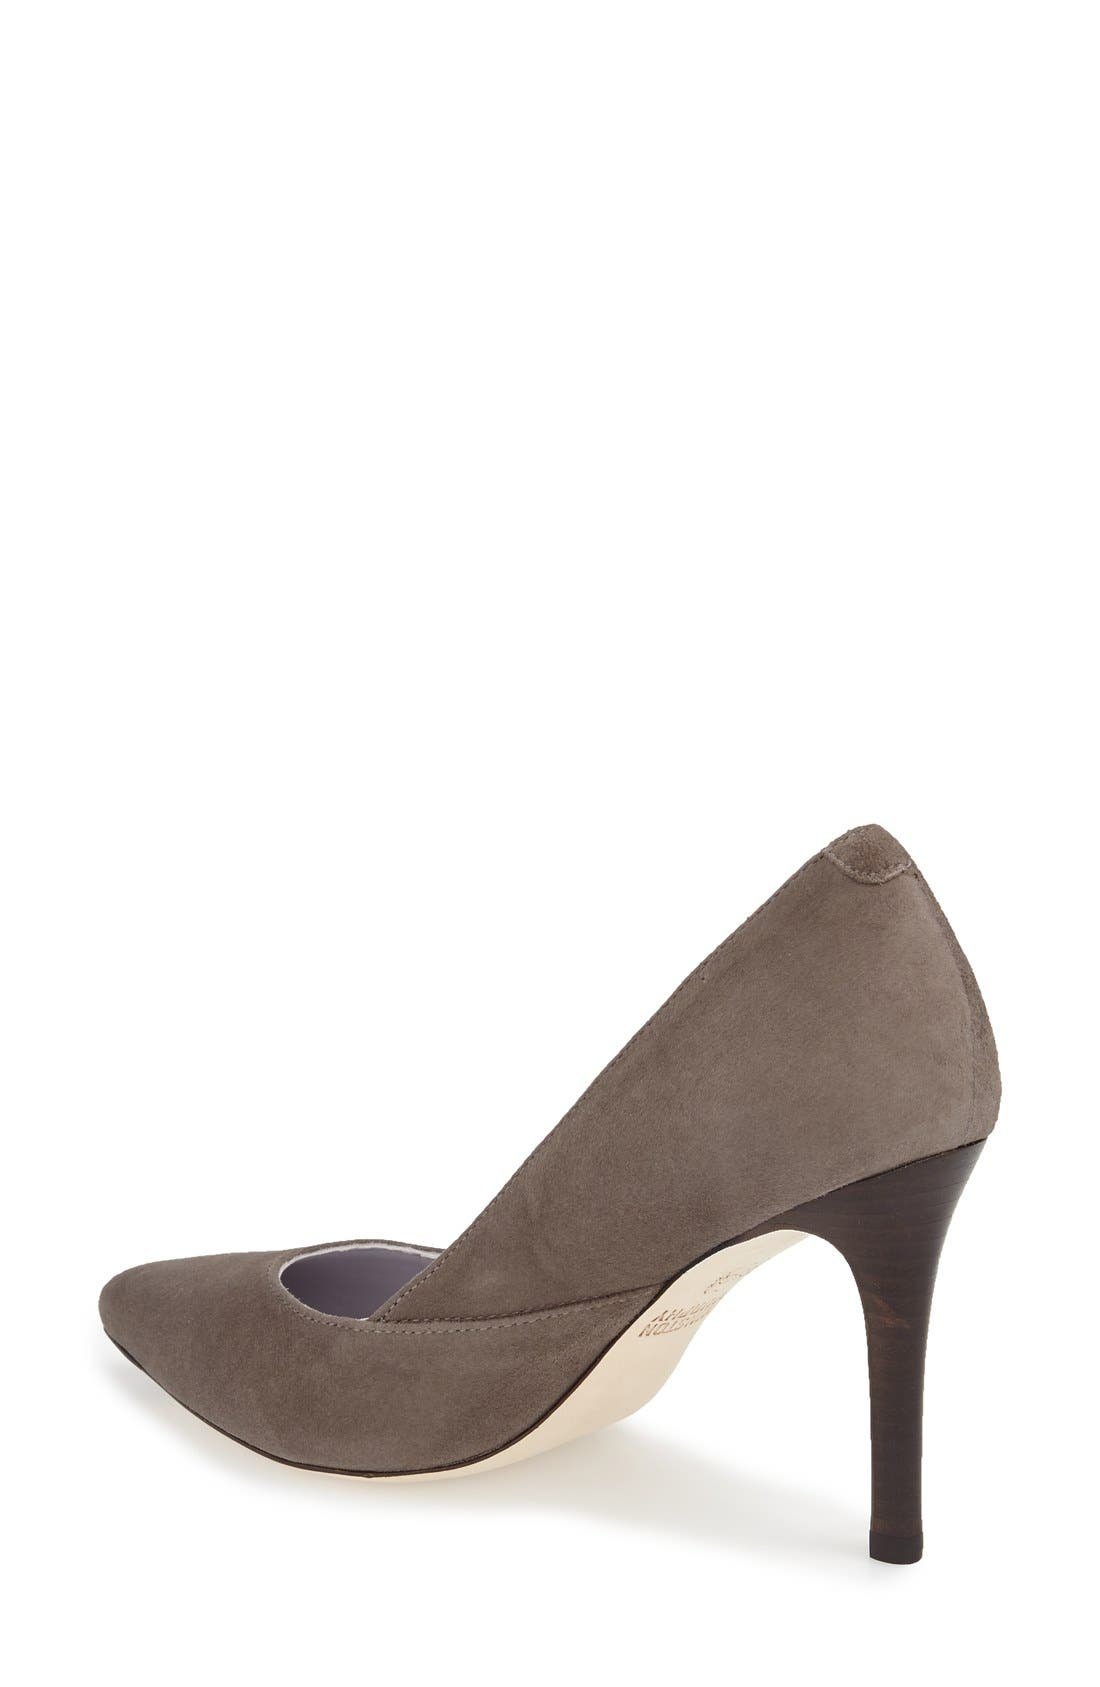 'Vanessa' Pointy Toe Leather Pump,                             Alternate thumbnail 11, color,